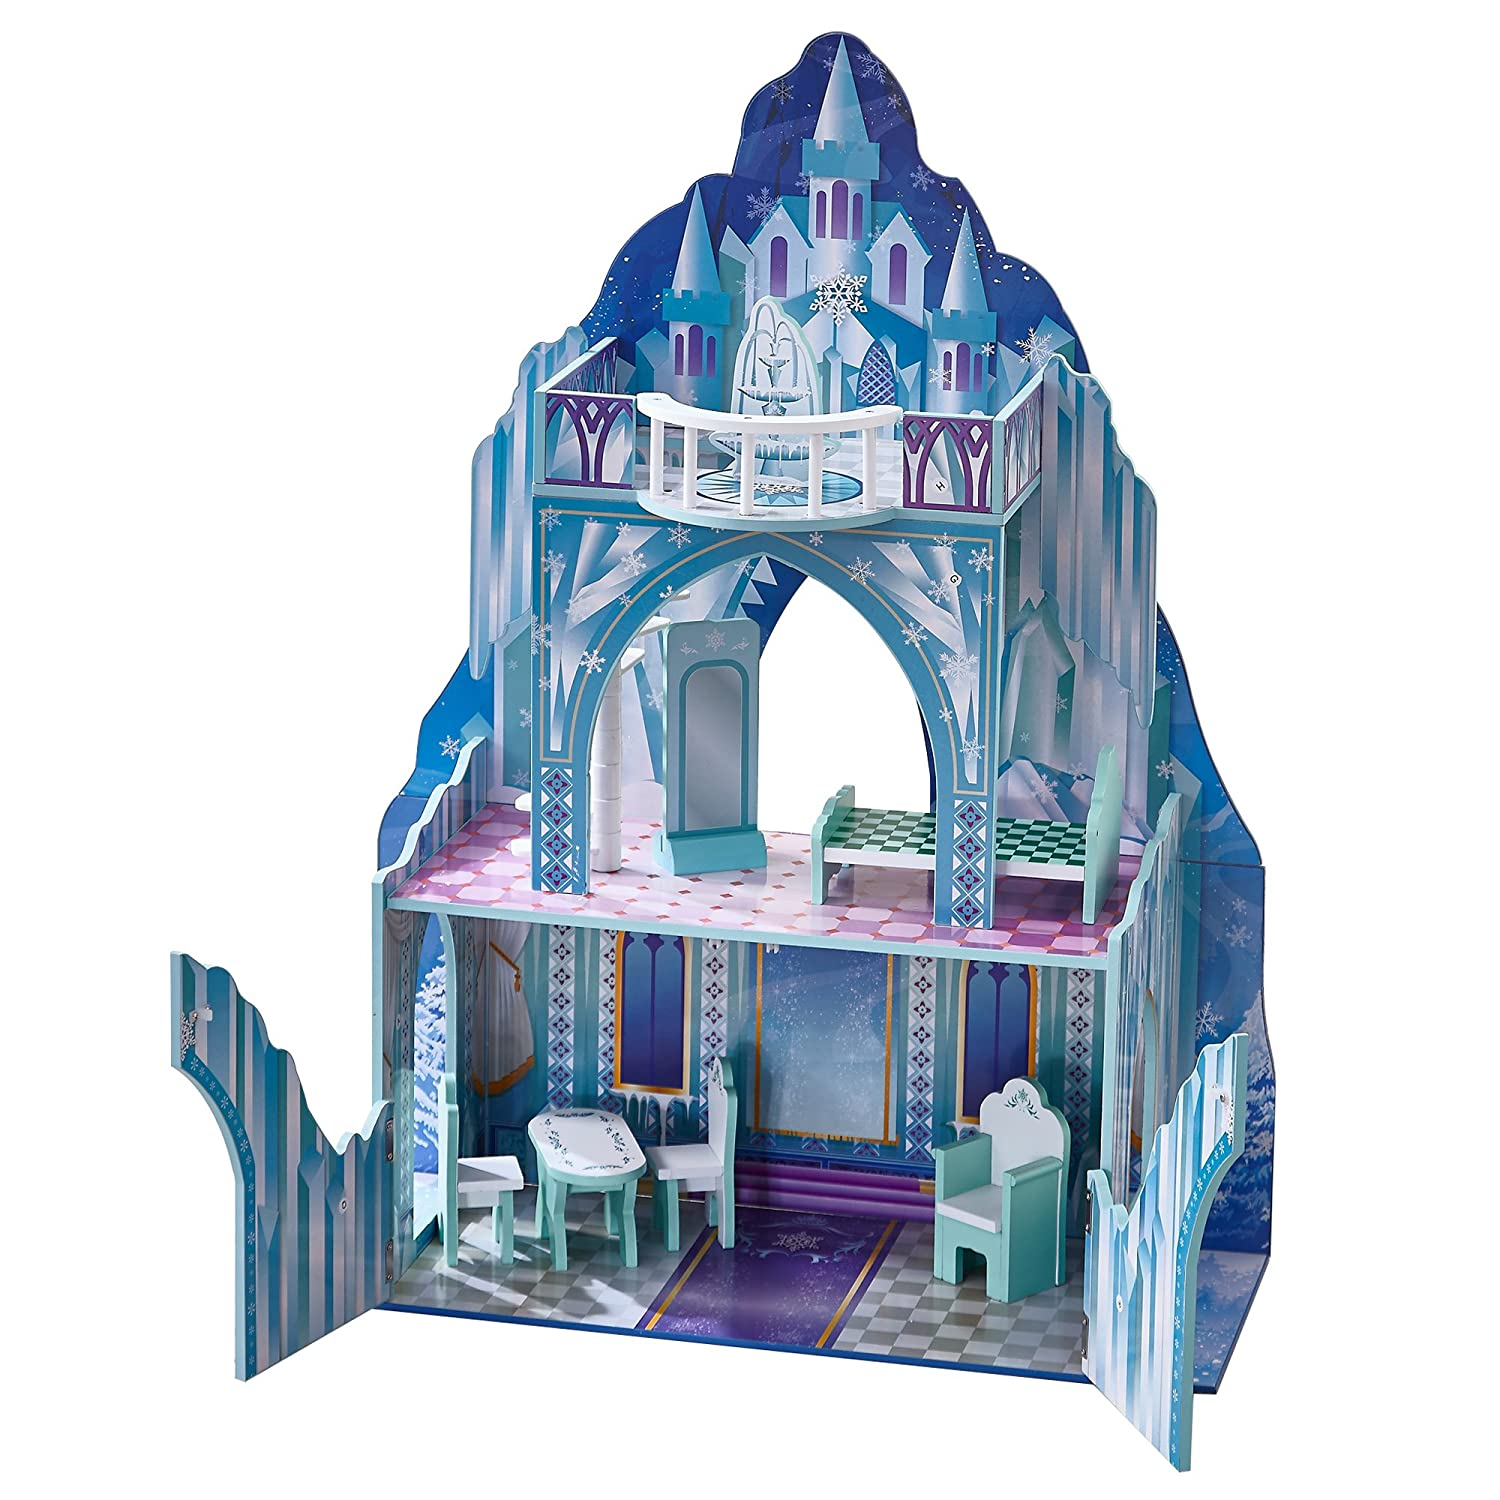 Teamson Kids - Ice Castle Wooden Doll House with 6 pcs Furniture for 12 inch Dolls Disney Frozen Inspired